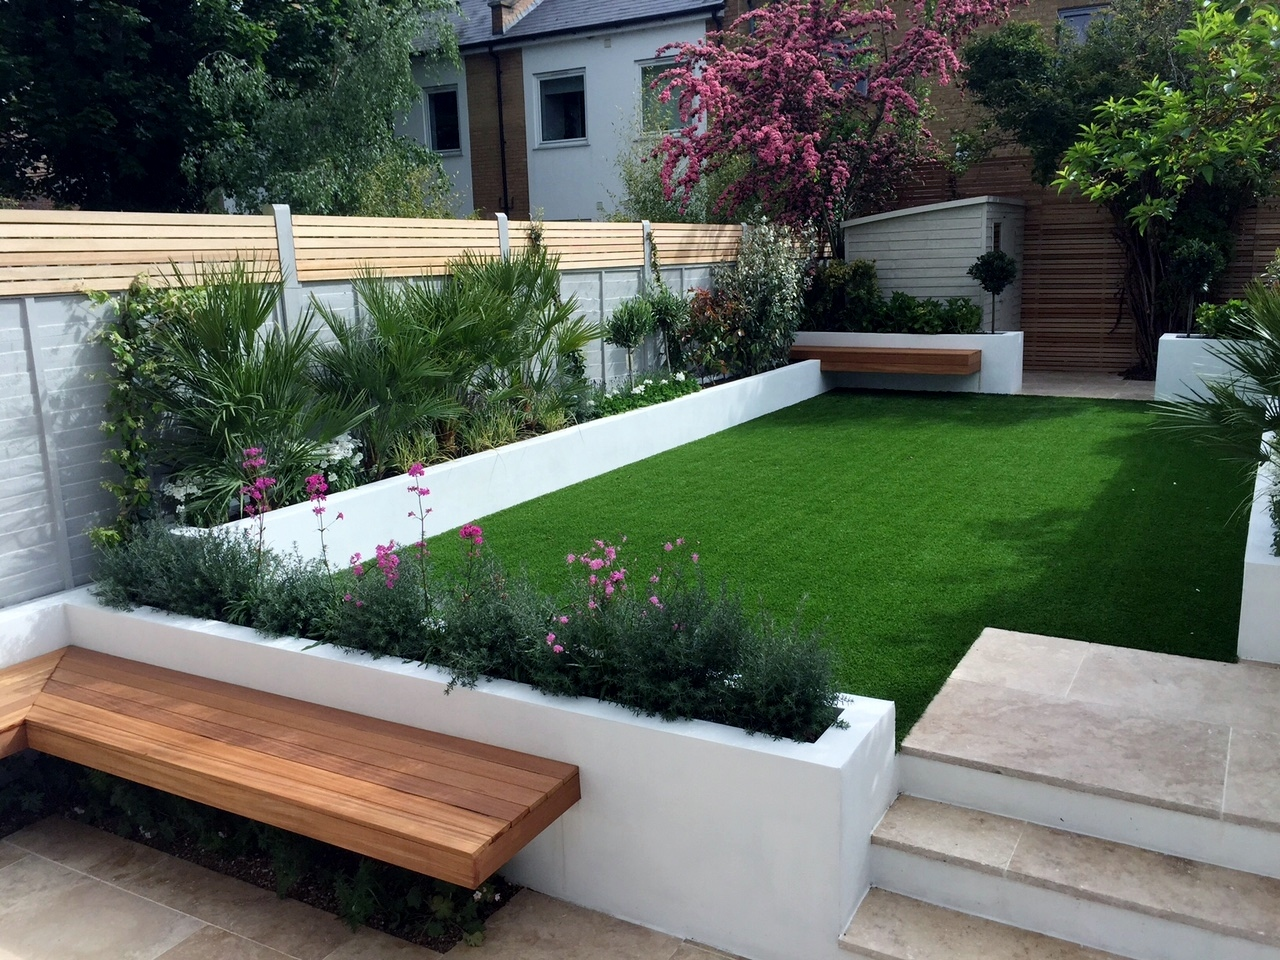 Modern garden design ideas fulham chelsea battersea for Modern backyard landscaping